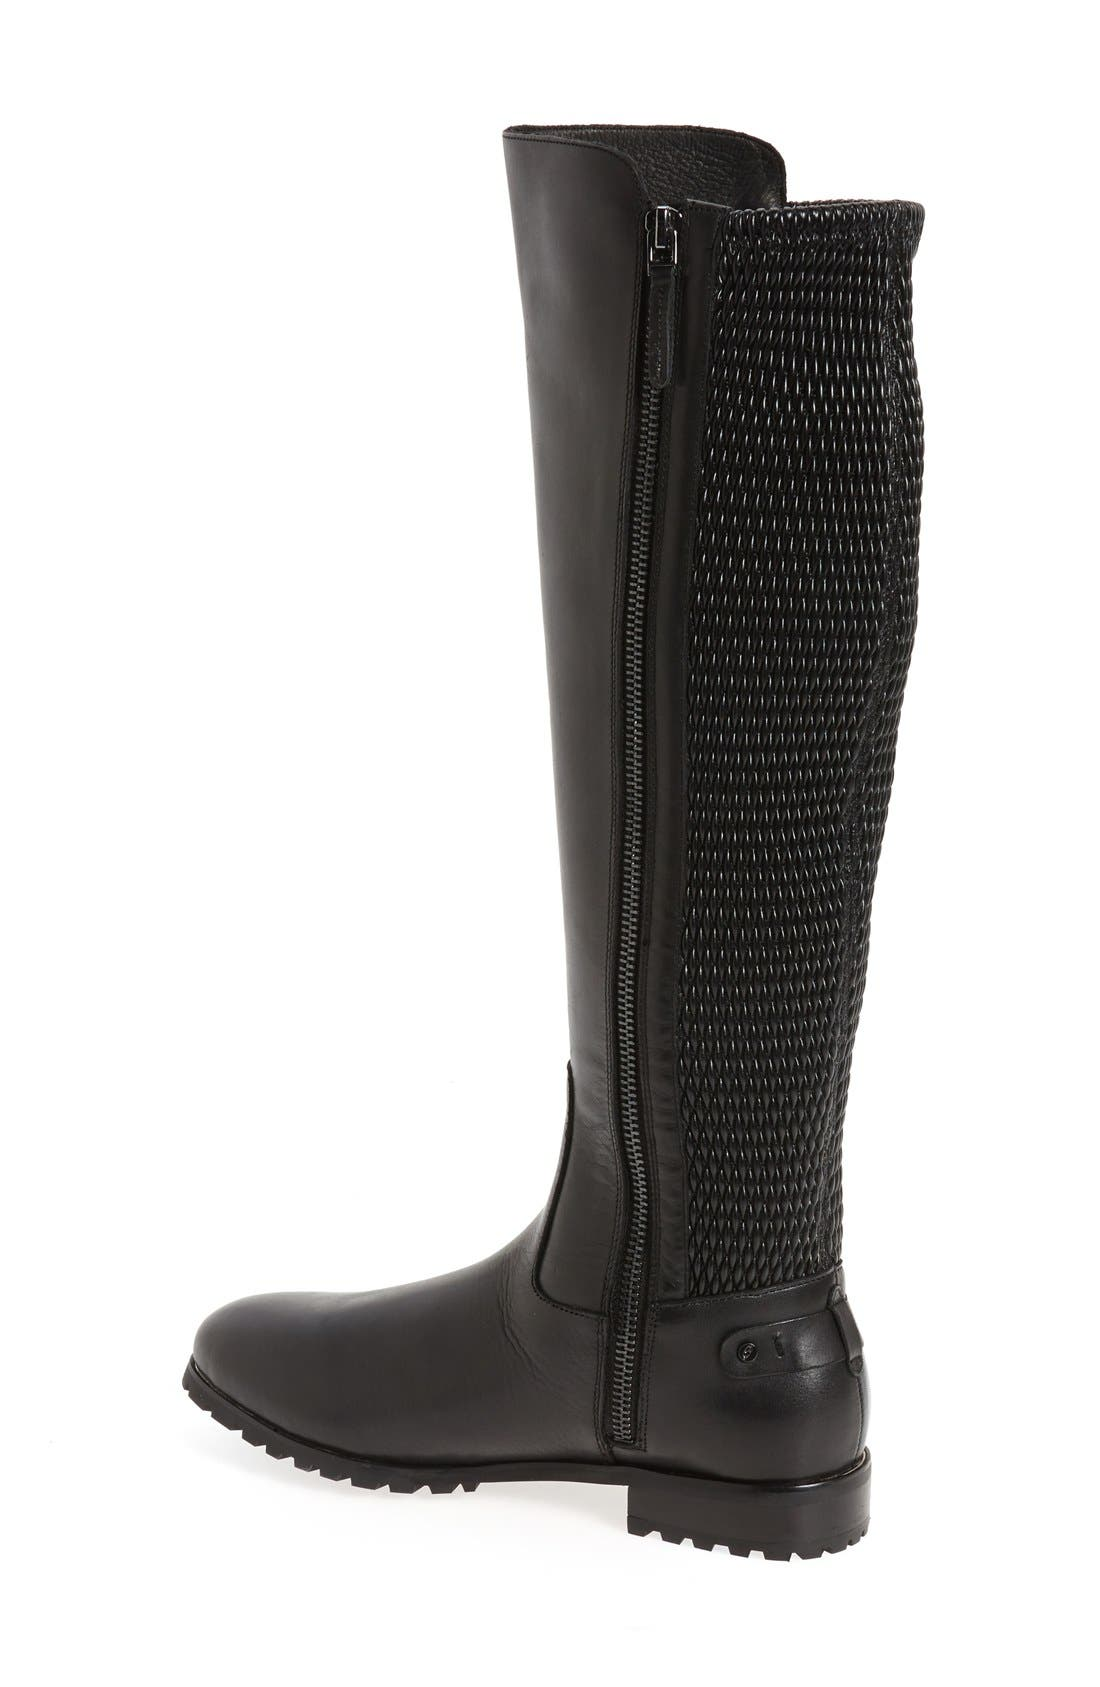 'Fabiana' Tall Boot,                             Alternate thumbnail 2, color,                             BLACK LEATHER